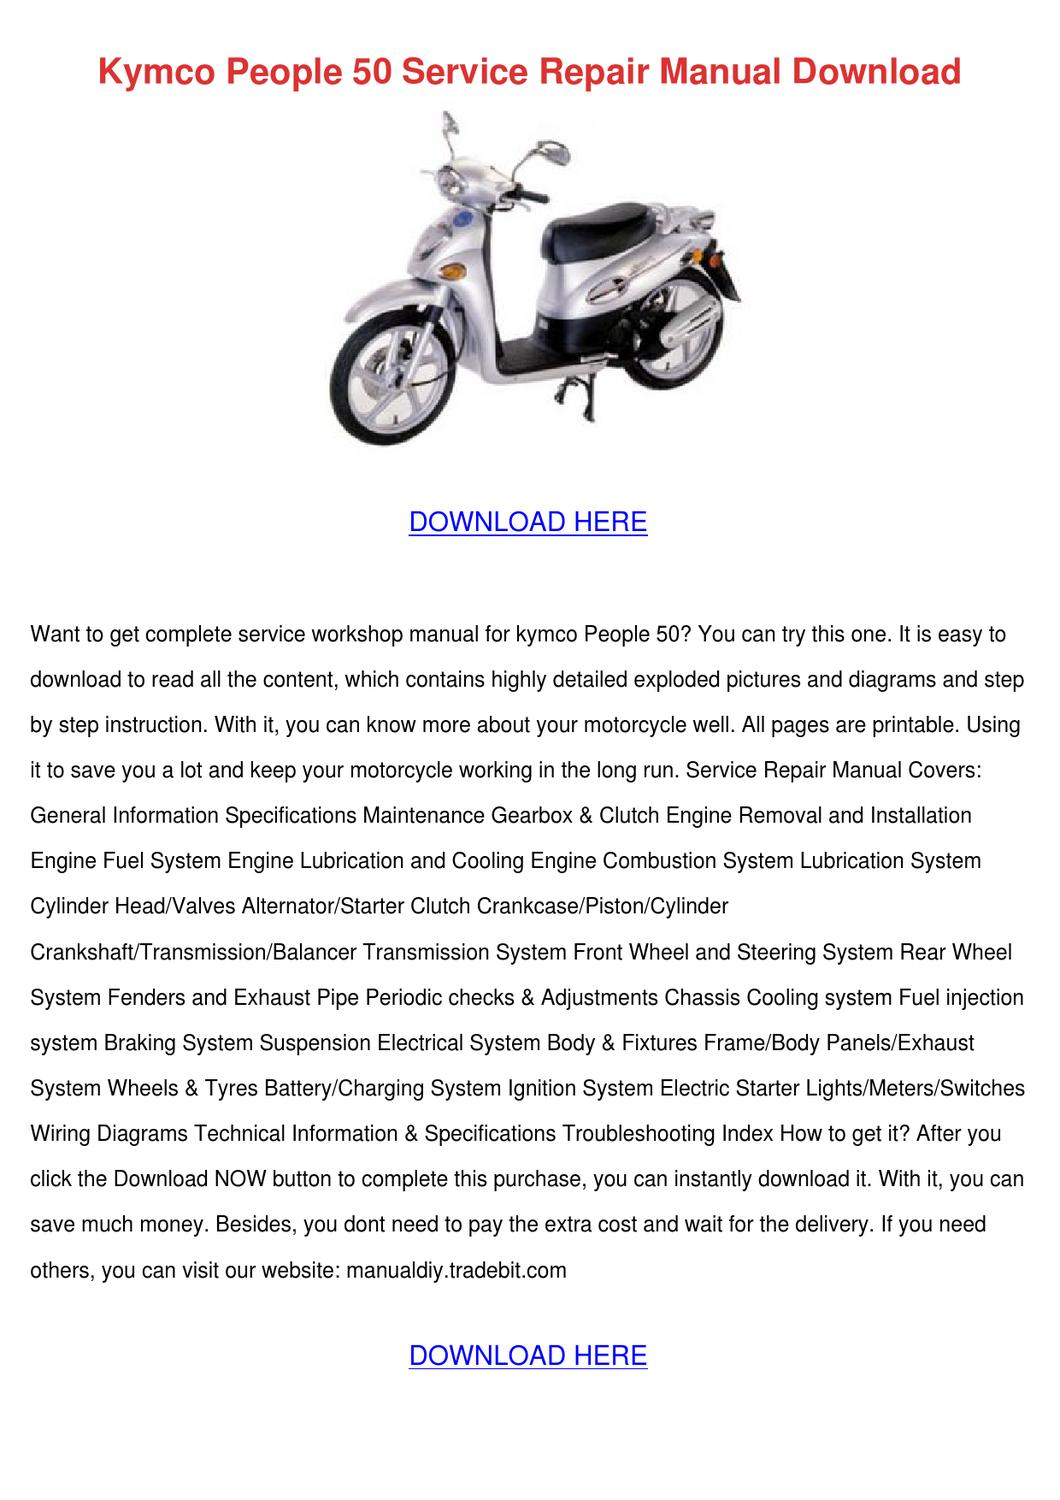 Kymco People 50 Service Repair Manual Downloa by HermelindaFishman - issuu